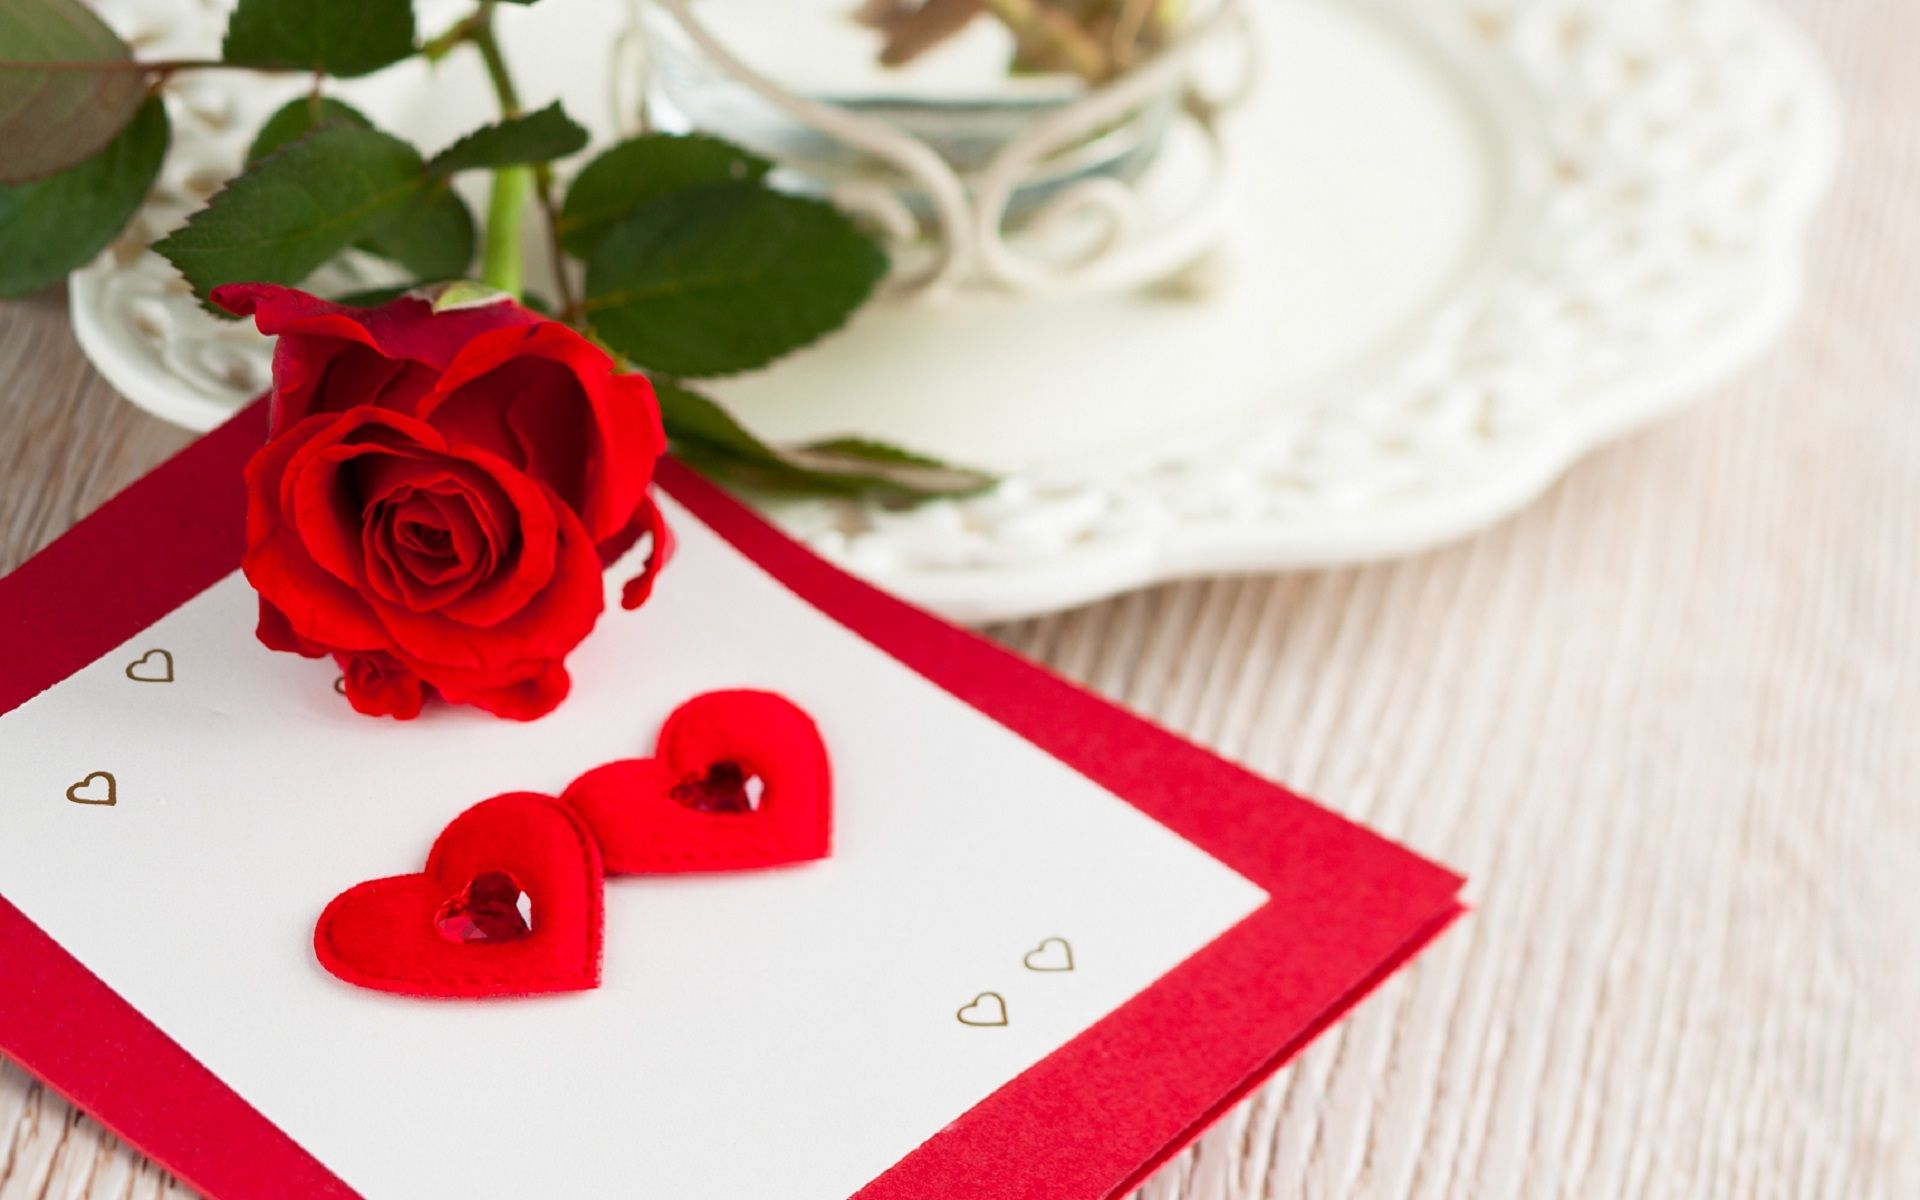 Love letter wallpapers hd backgrounds images pics photos free hd love letter wallpapers hd backgrounds images pics photos free thecheapjerseys Image collections